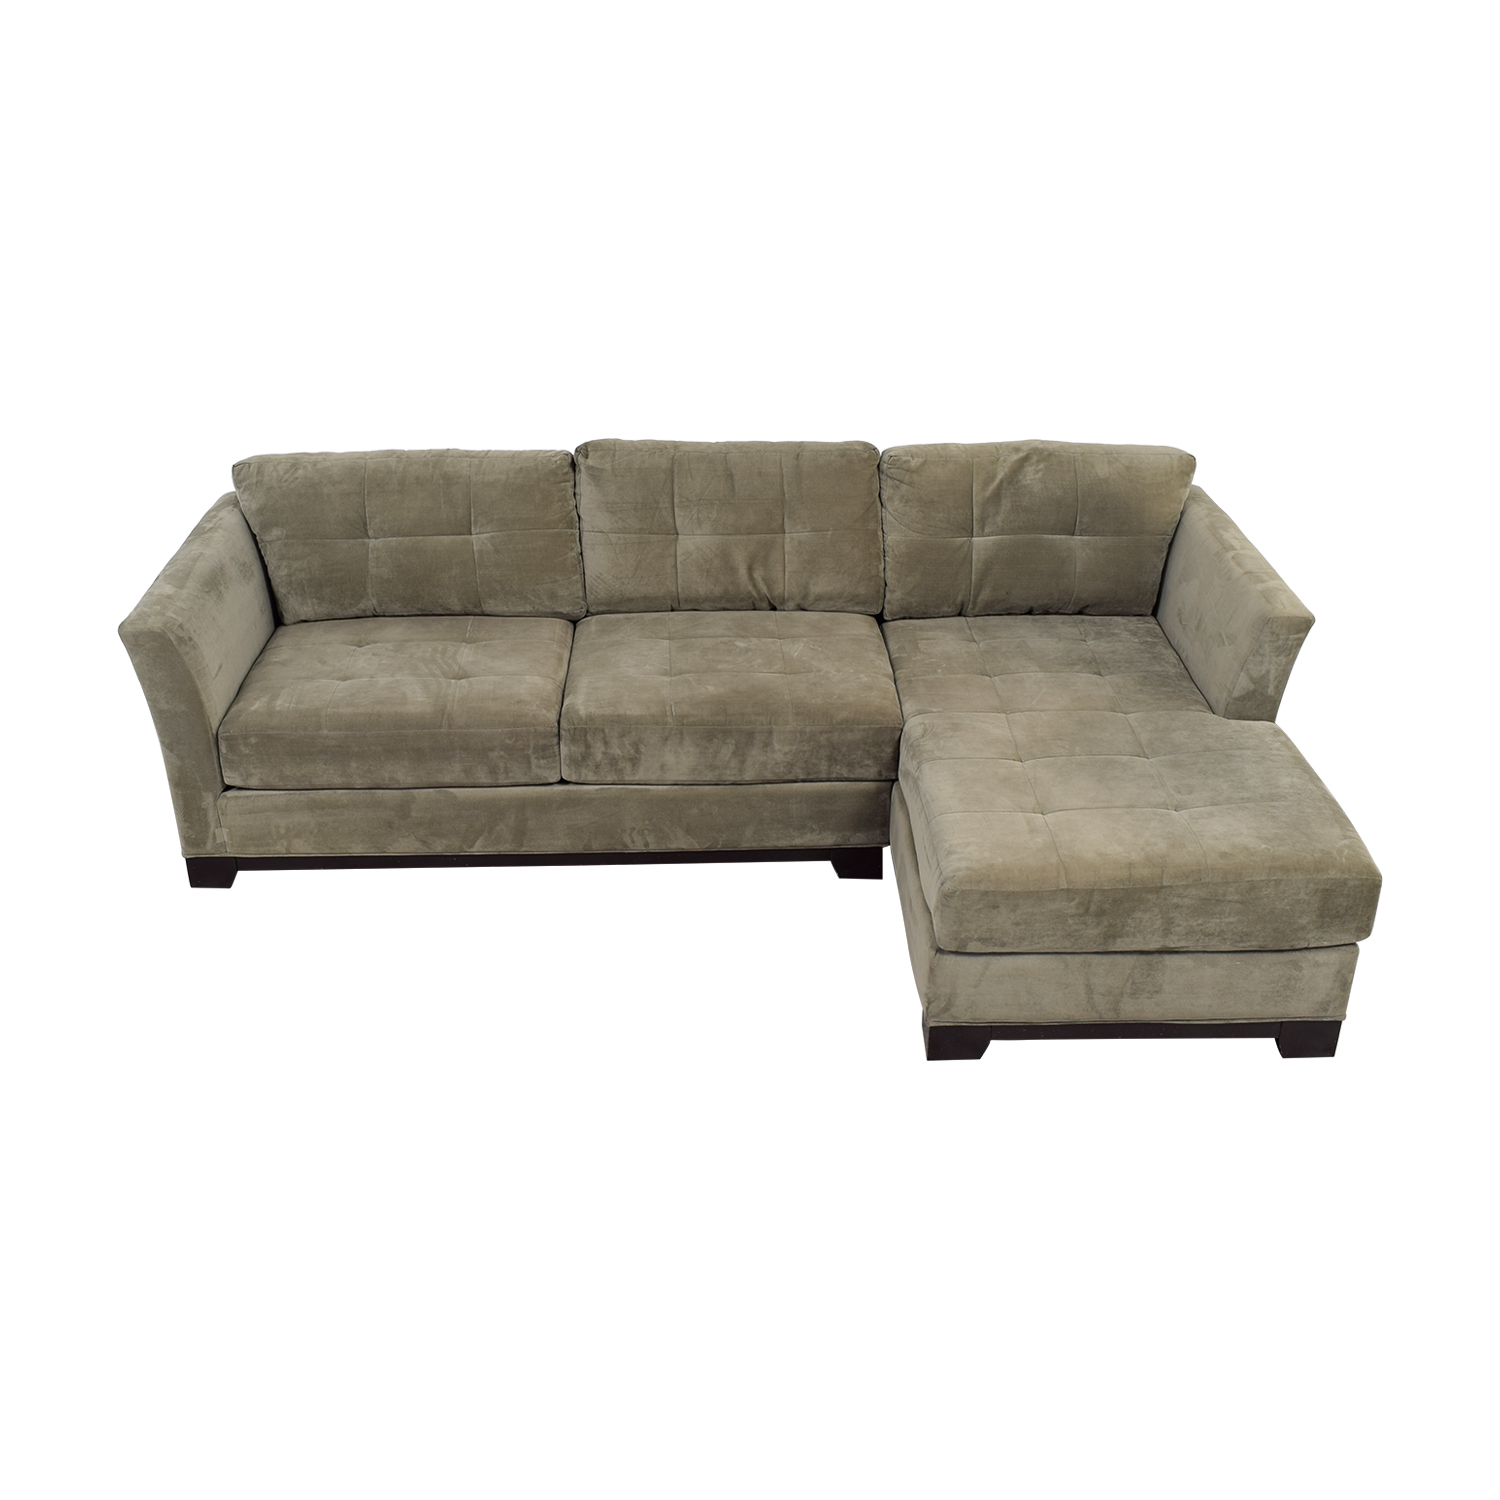 Macy's Macy's Elliot Grey Microfiber Semi-Tufted Chaise Sectional used